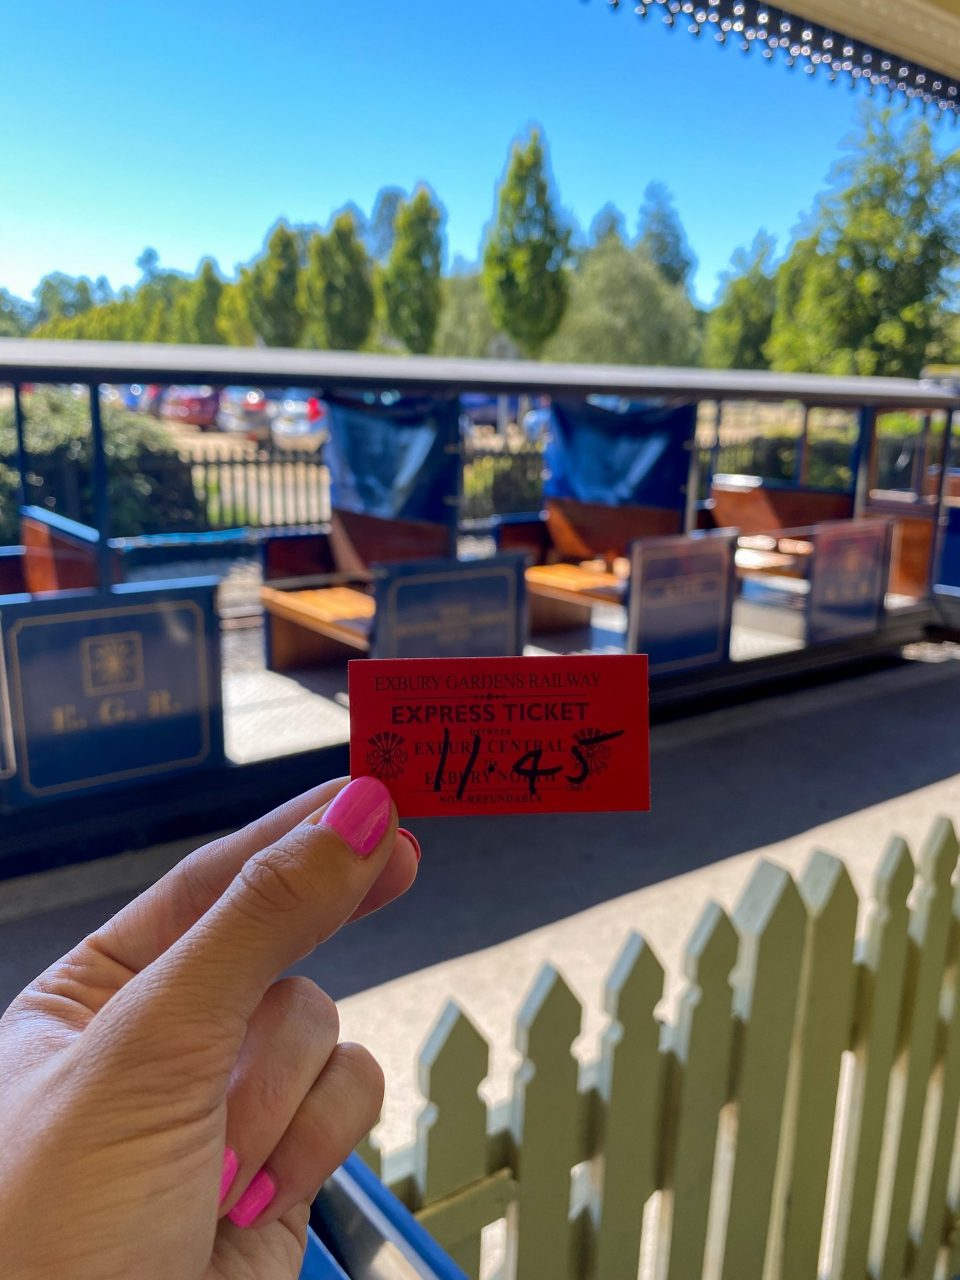 train ticket held up in front of steam train